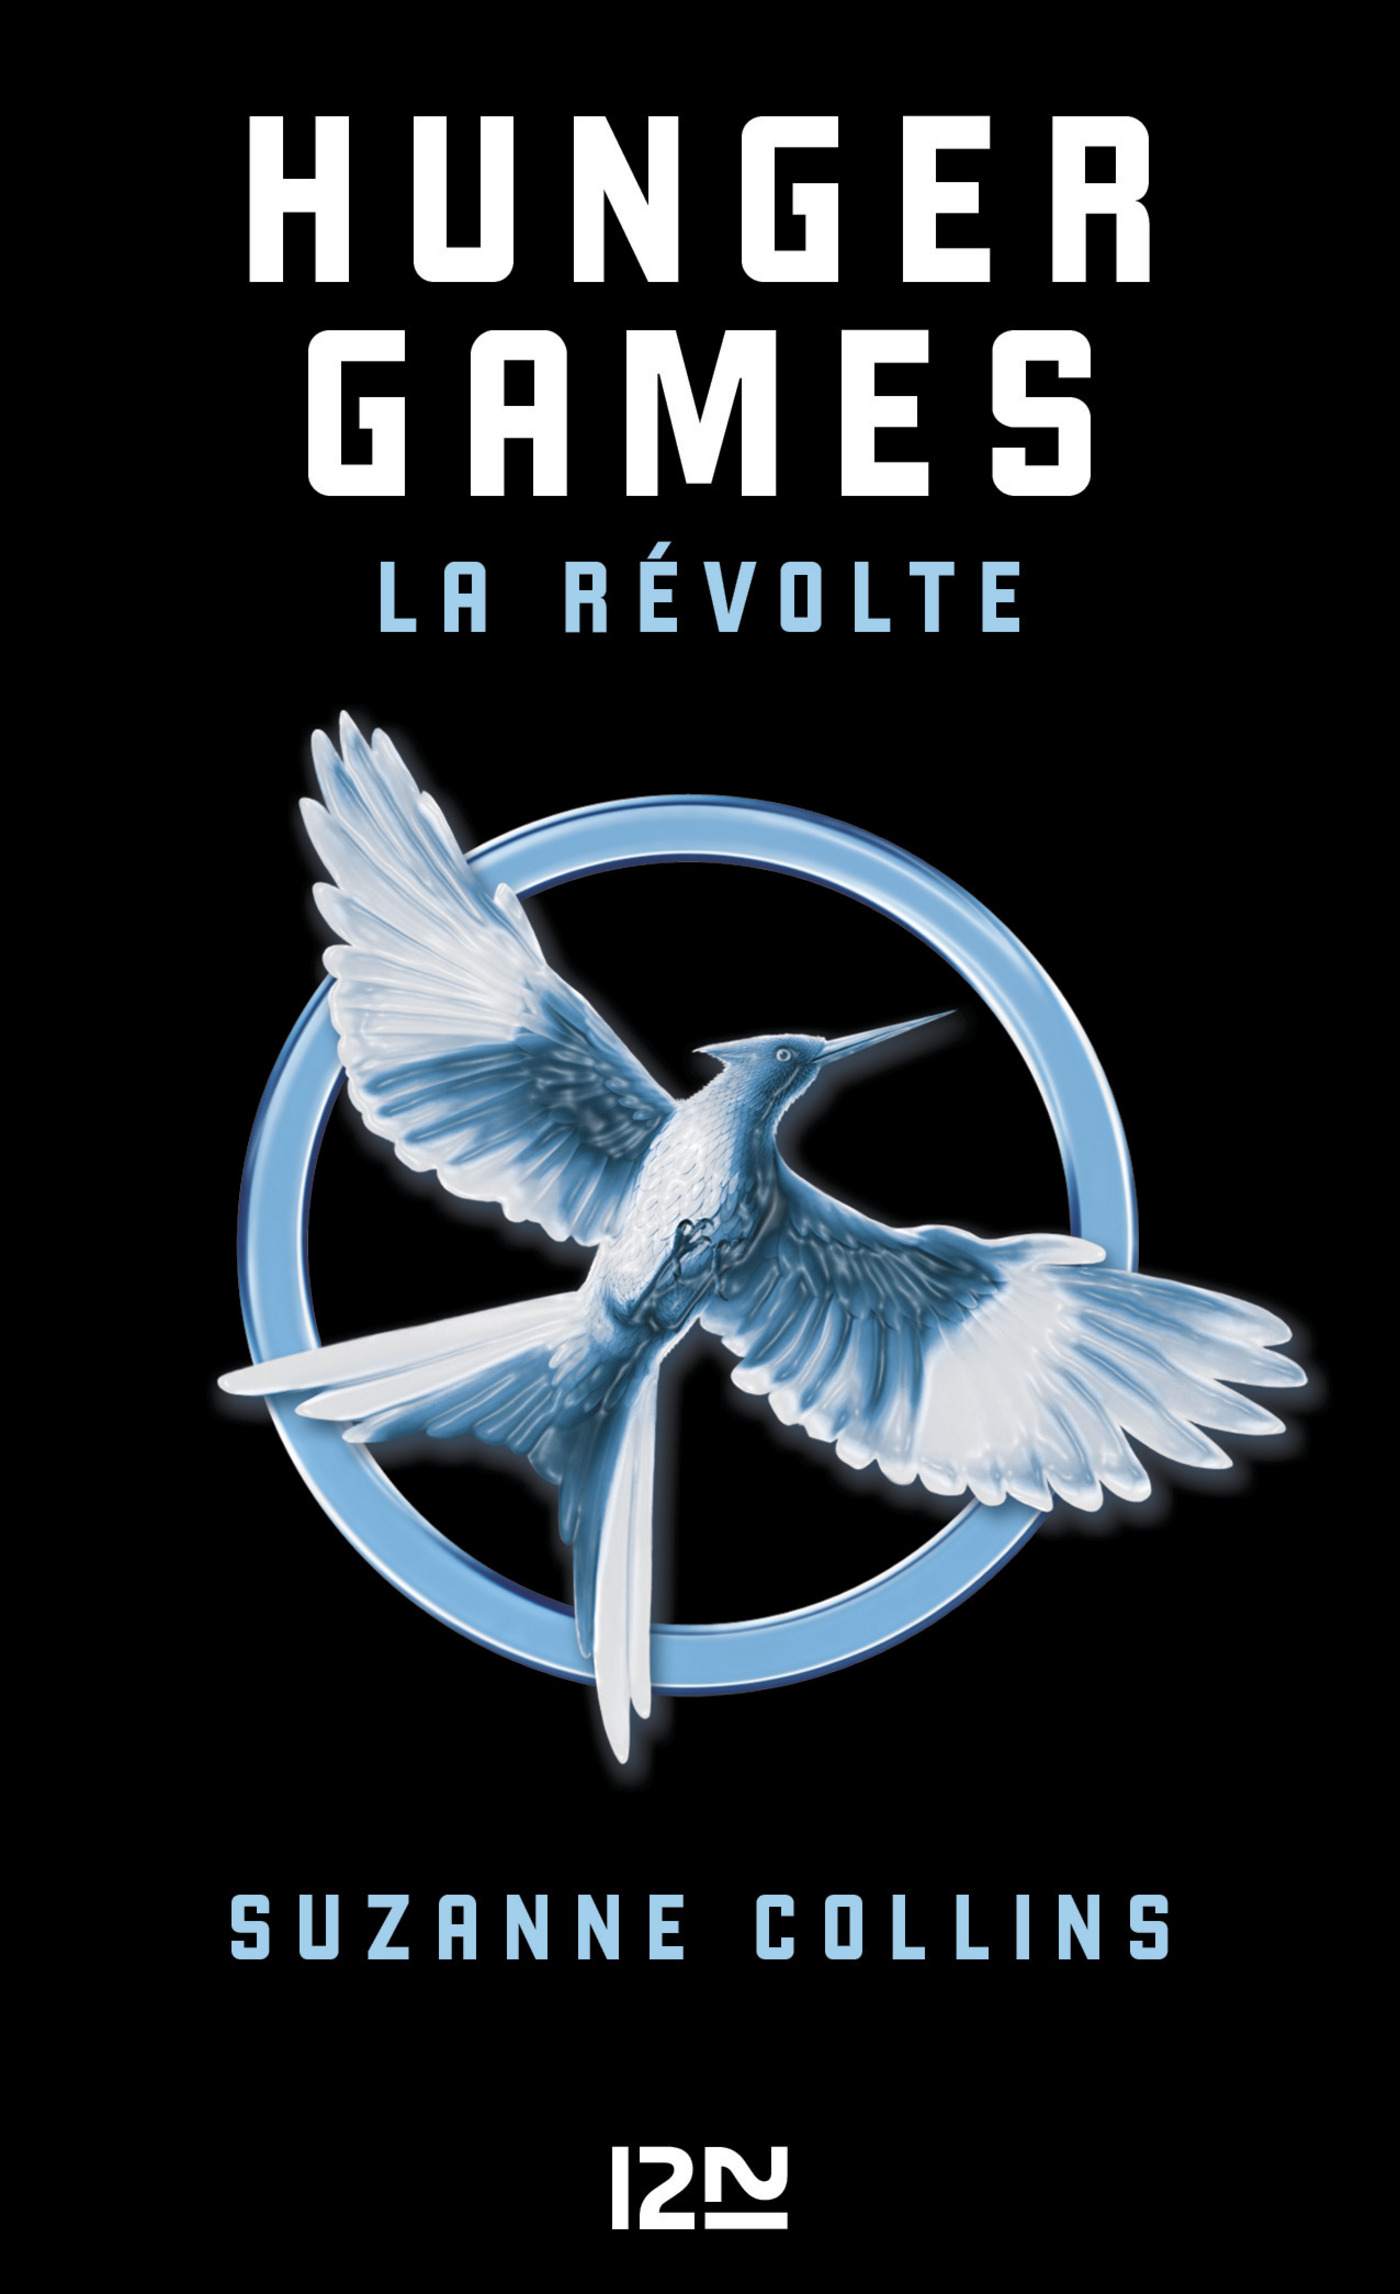 Hunger Games 3 |